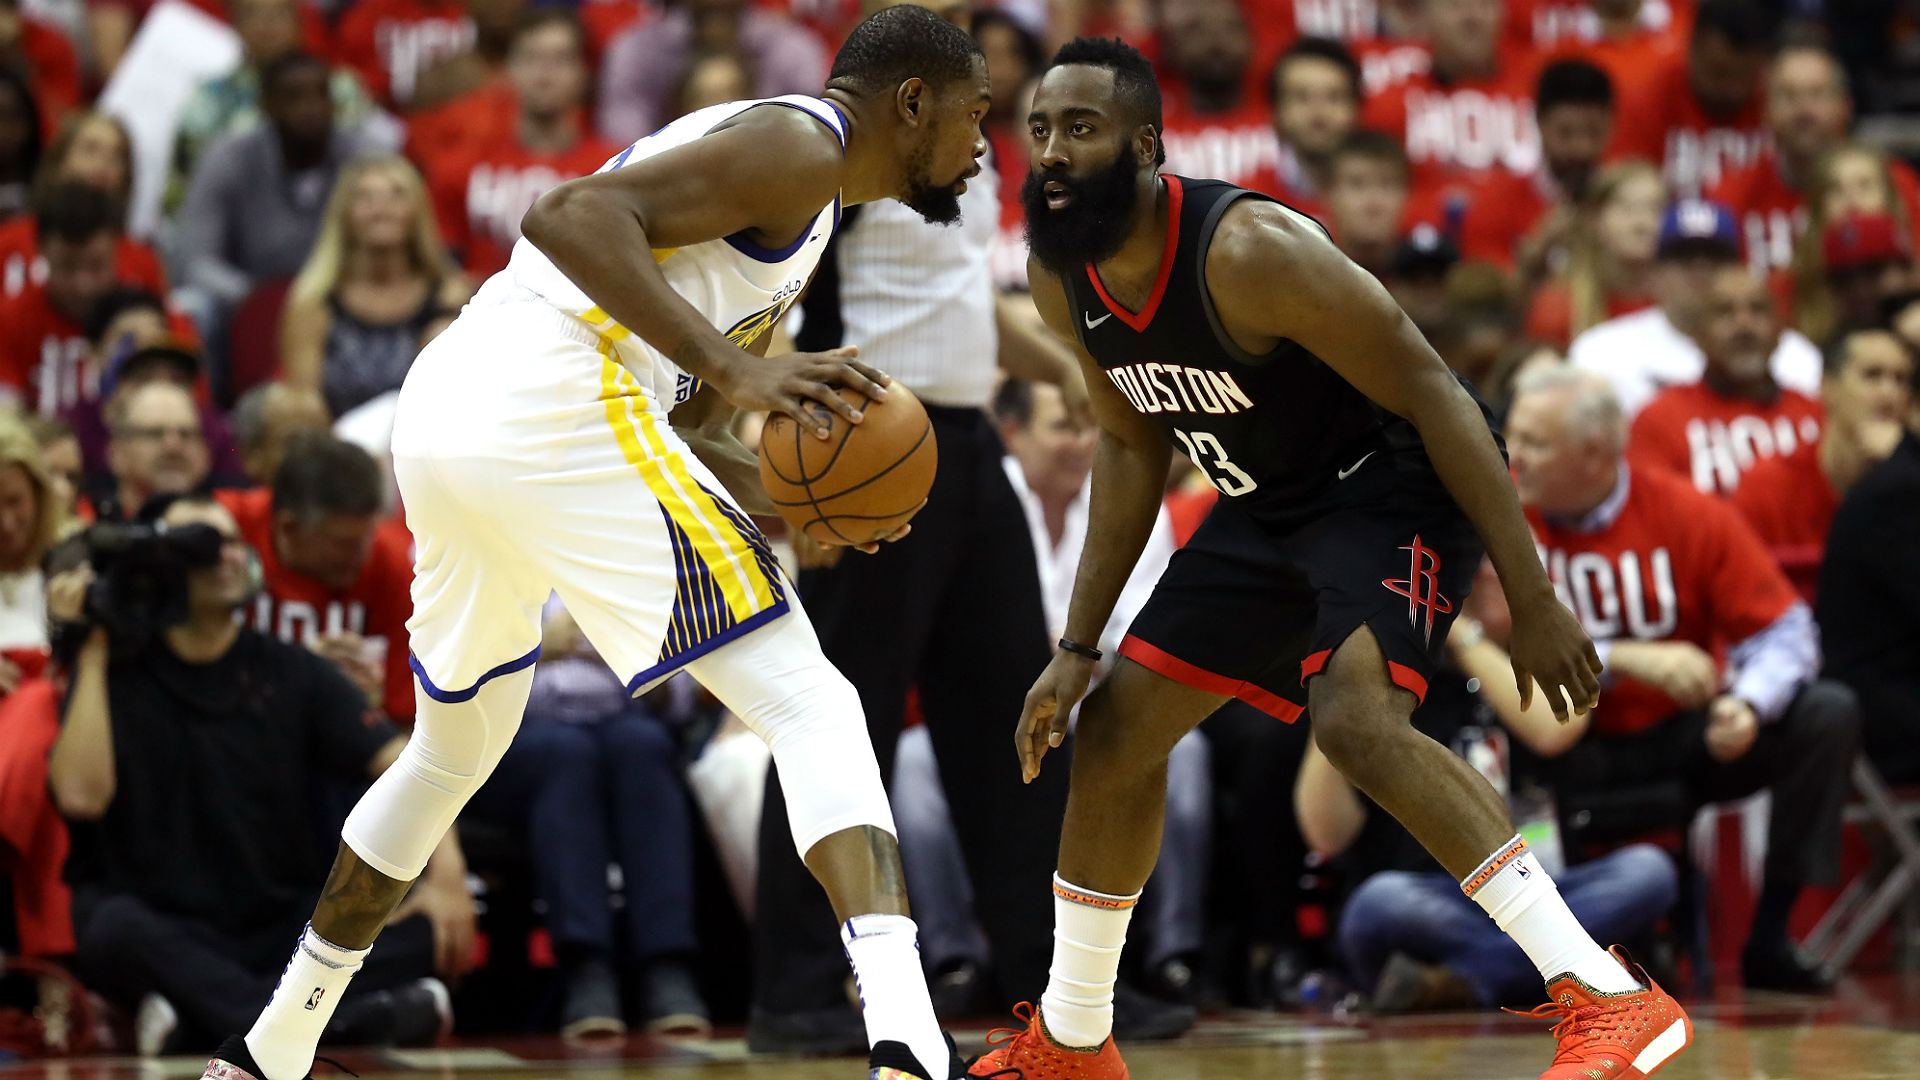 Seed Rockets host Warriors to start conference finals